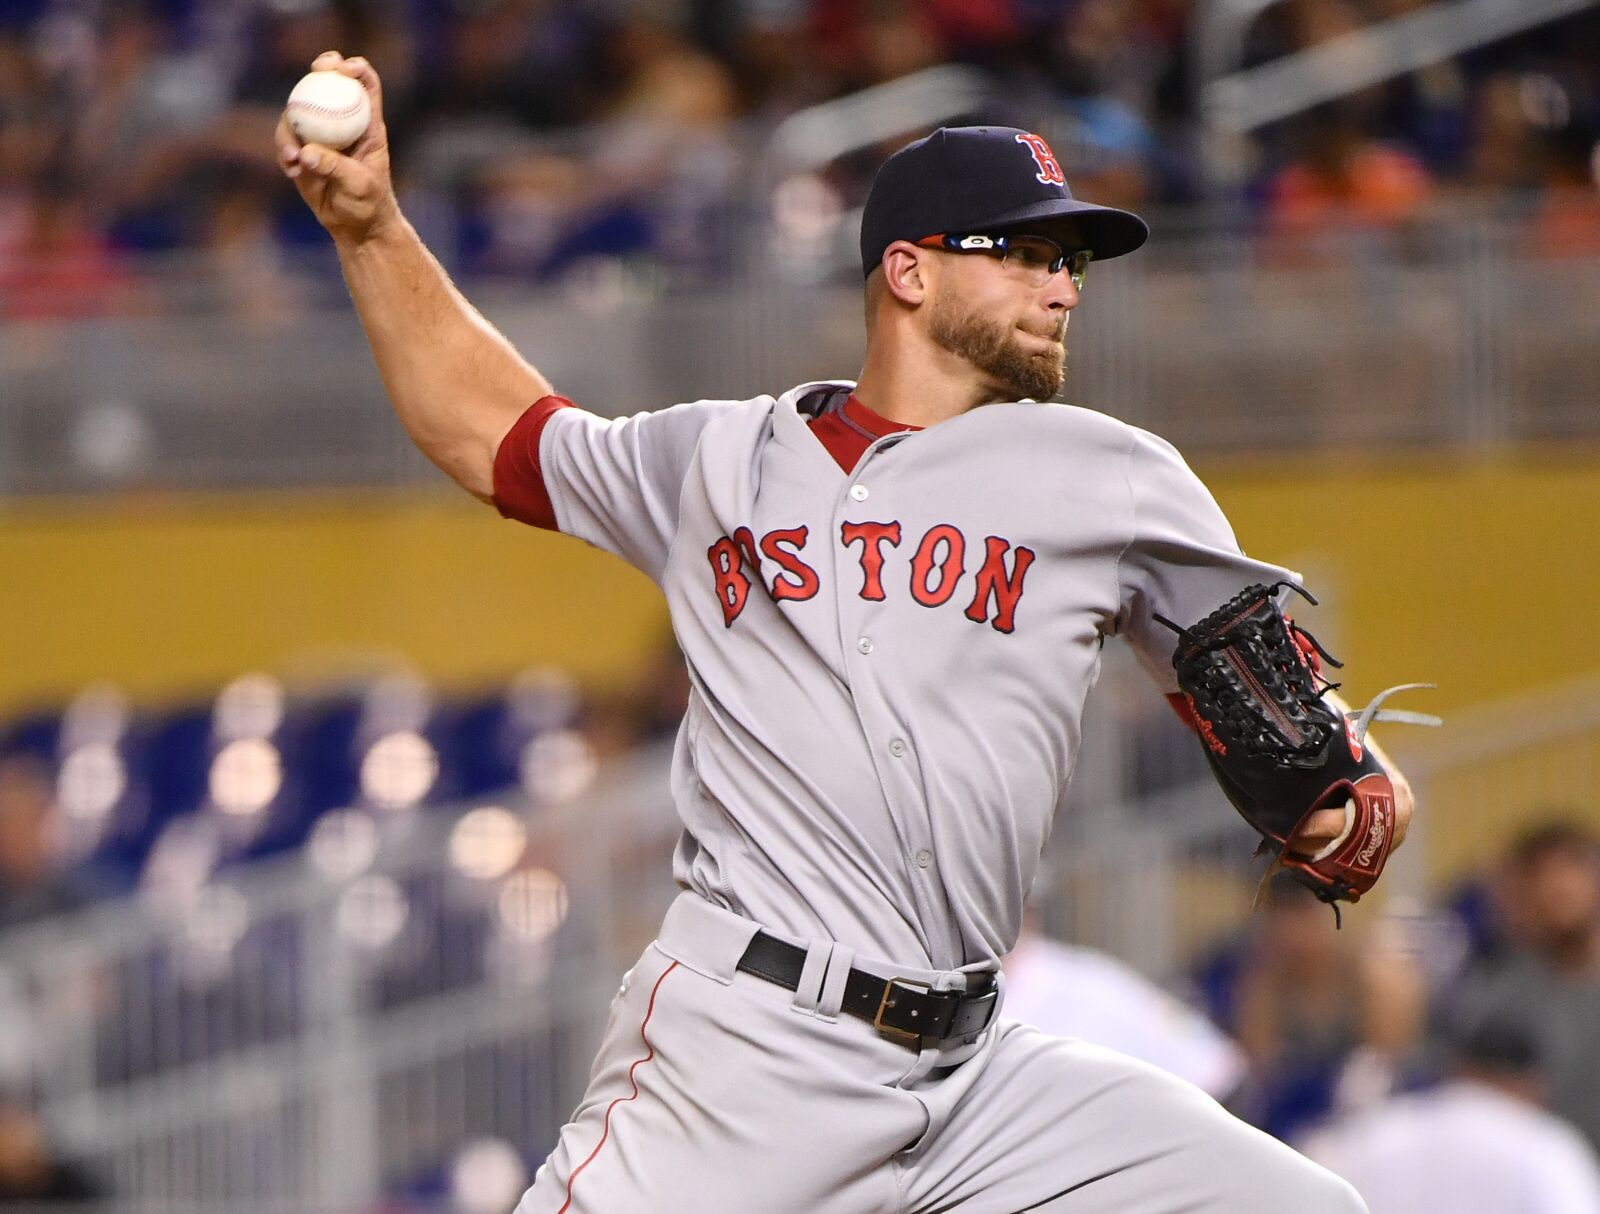 Red Sox reliever Marcus Walden has been a revelation in the bullpen